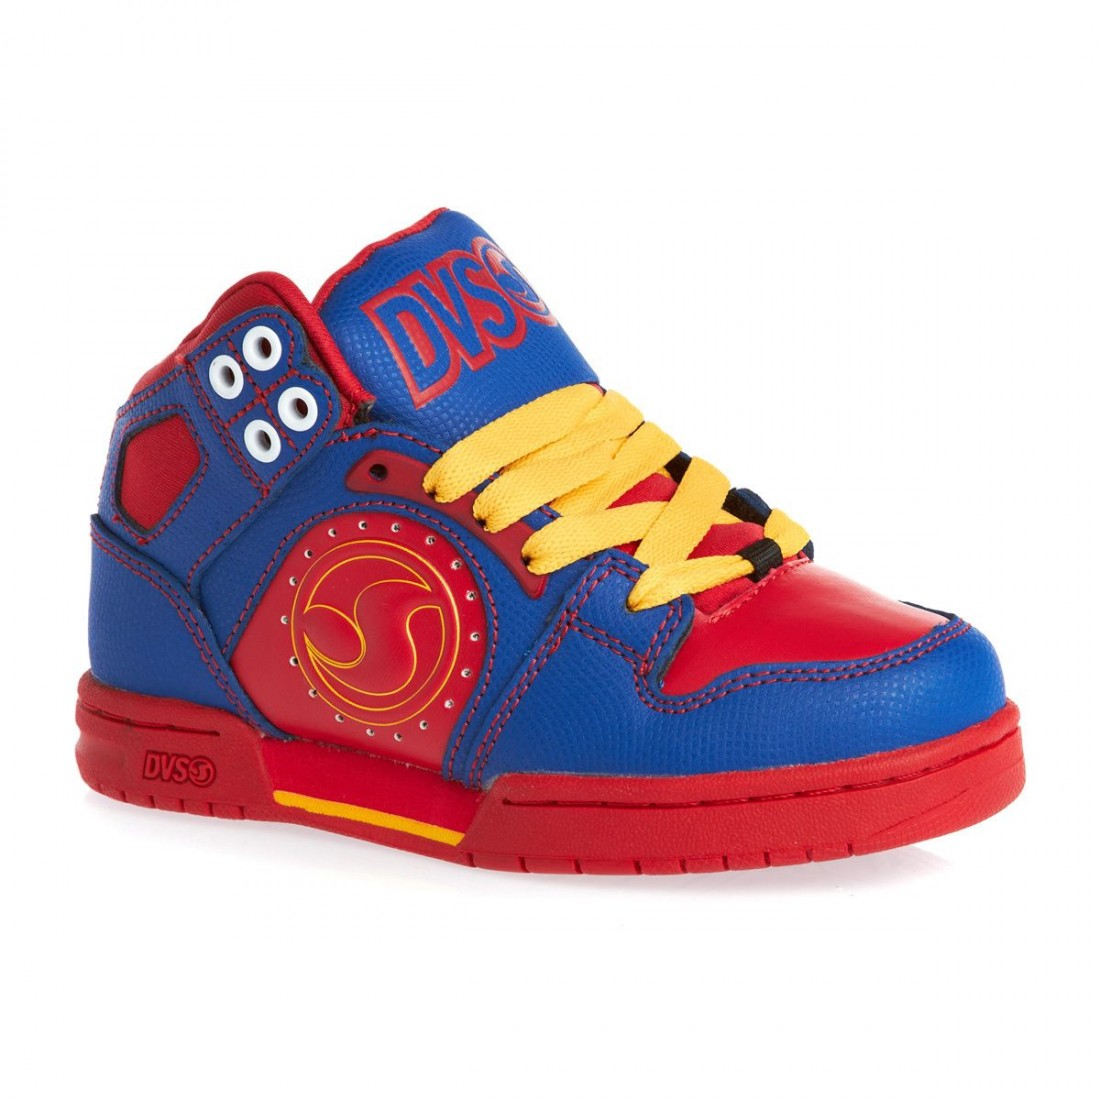 KIDS ACES HIGH blue red action leather